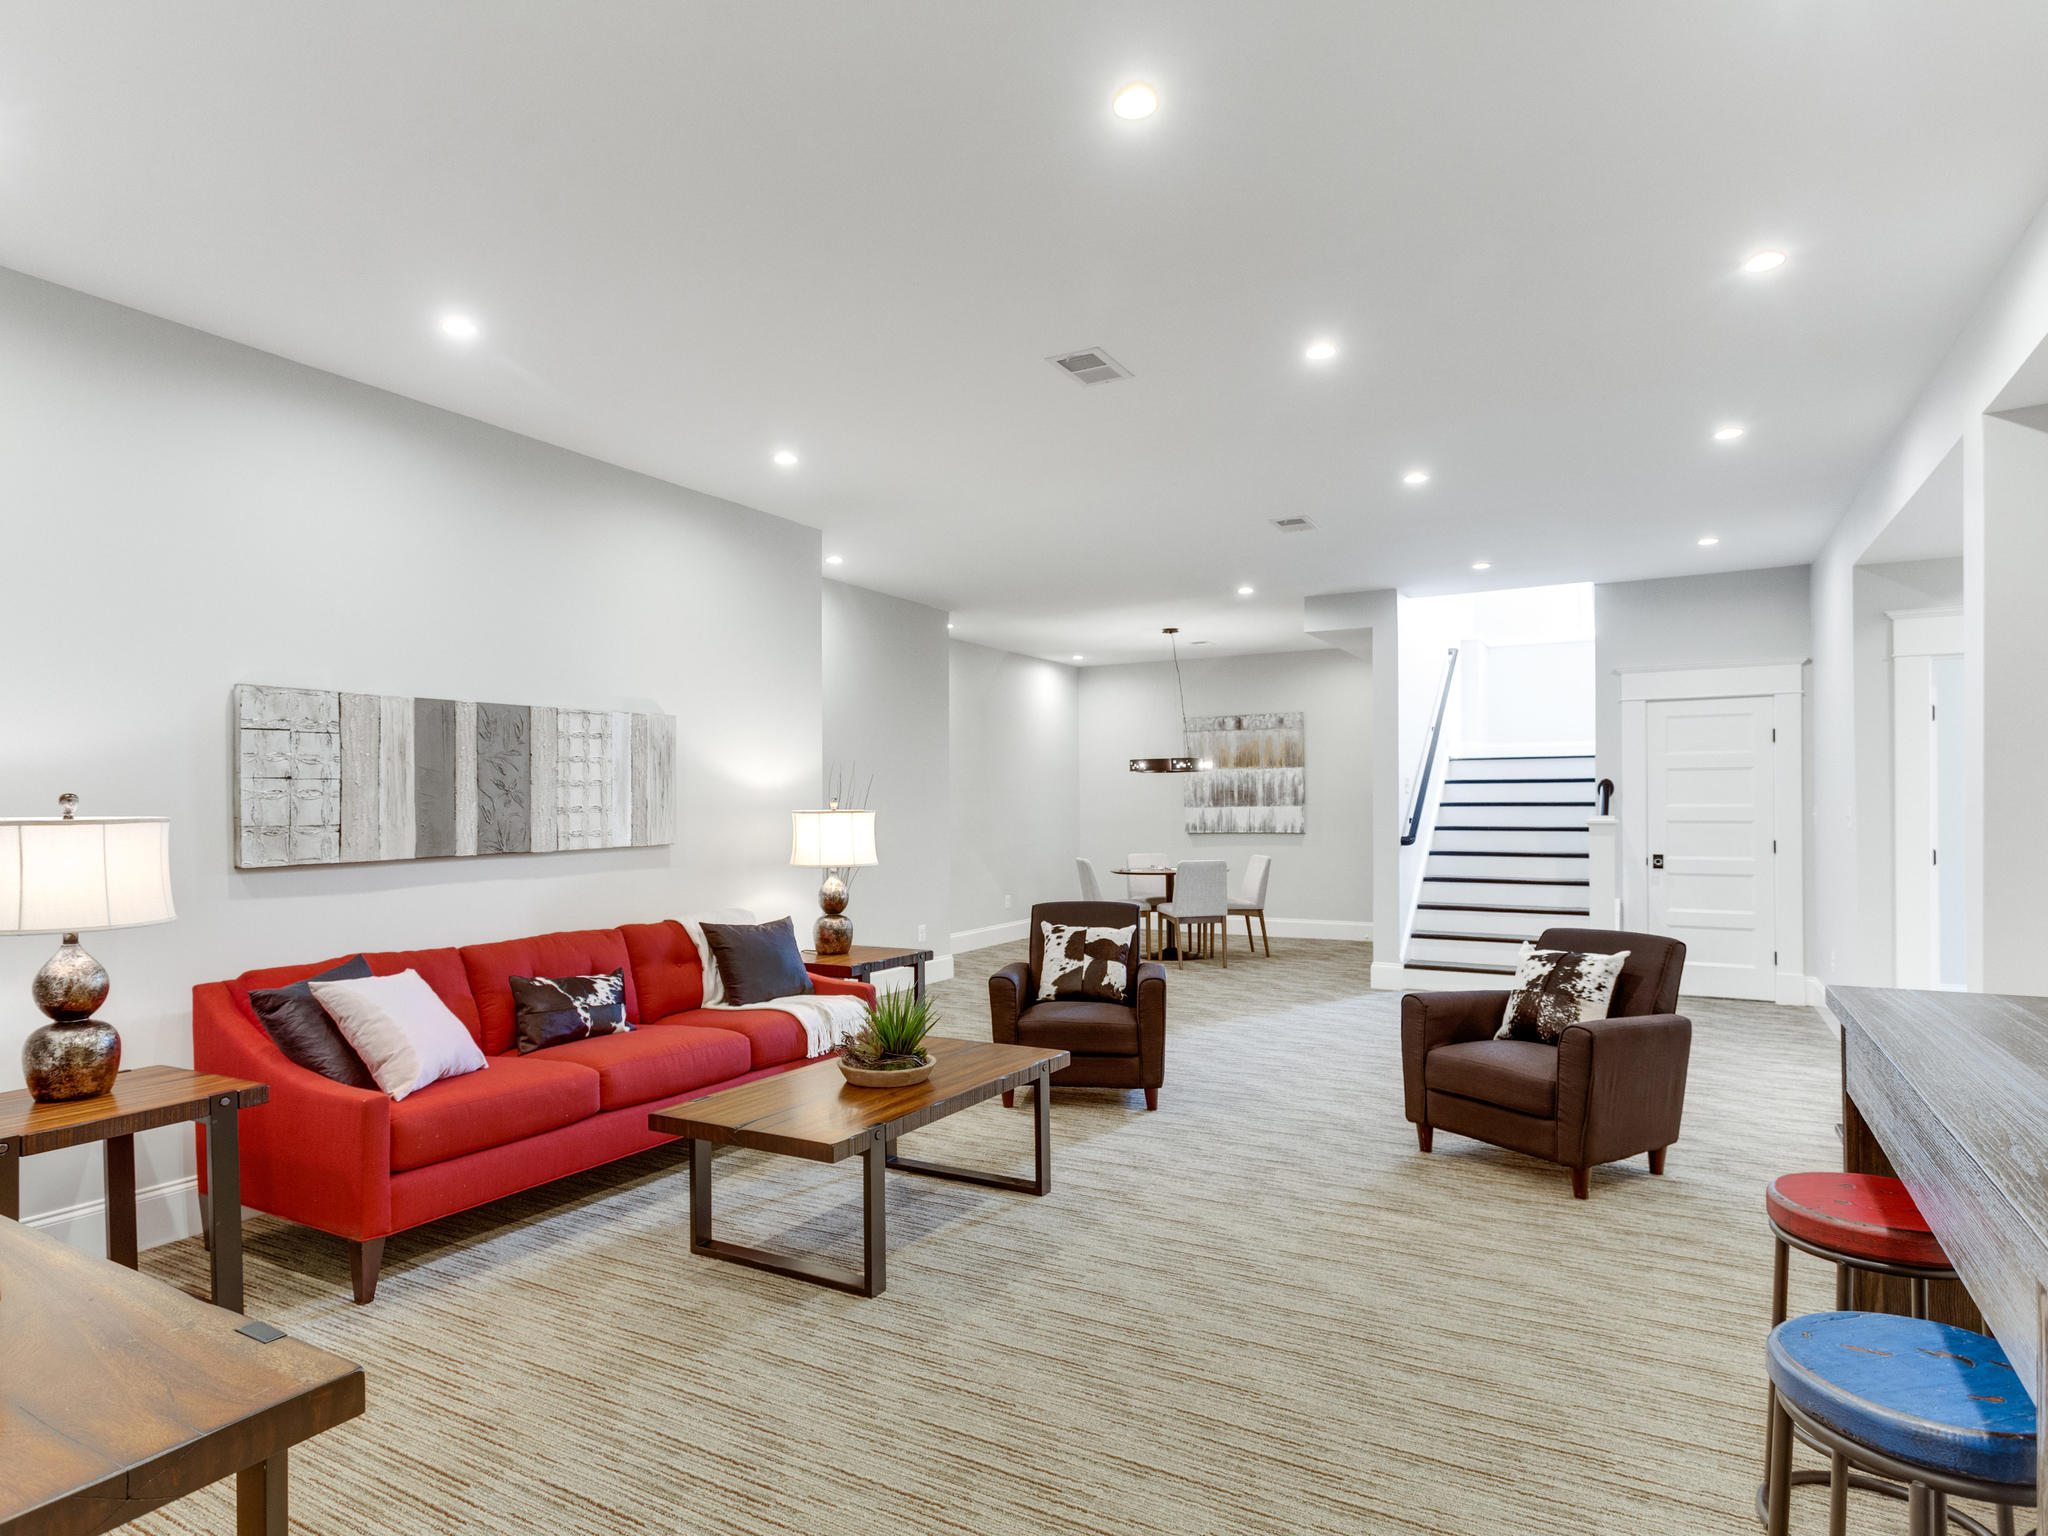 Basement with 10 foot ceilings. Custom Home by Custom Builder, North Arlington, VA 22207